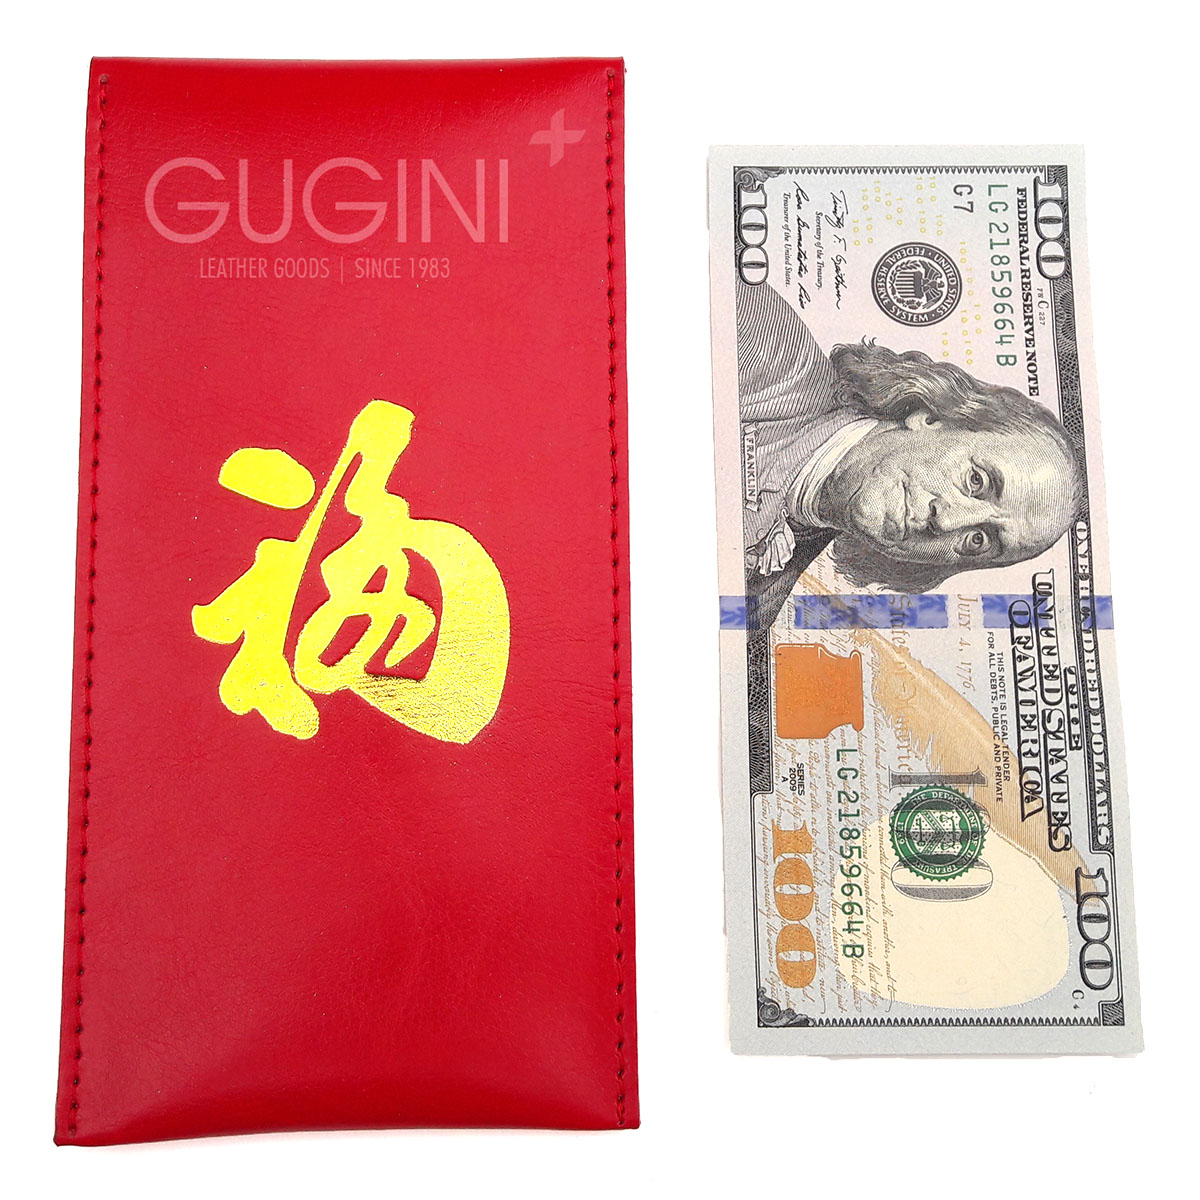 (RS) Luxury Angpao - Large Size Single Button by GUGINI